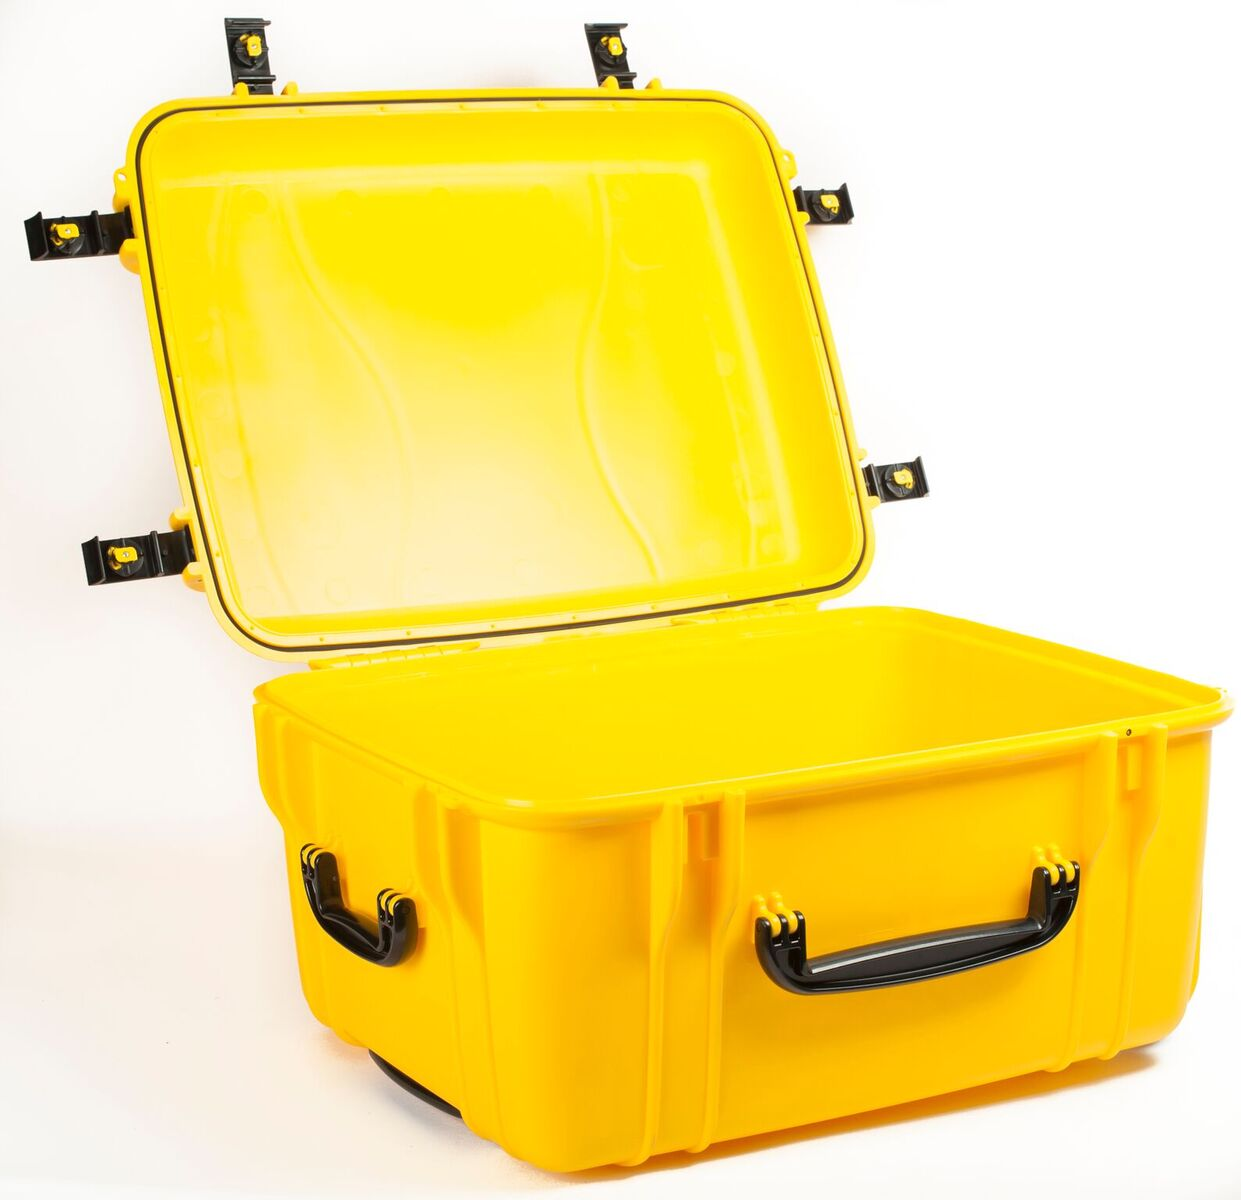 SEAHORSE PROTECTIVE EQUIPMENT CASES      SE1220,YL